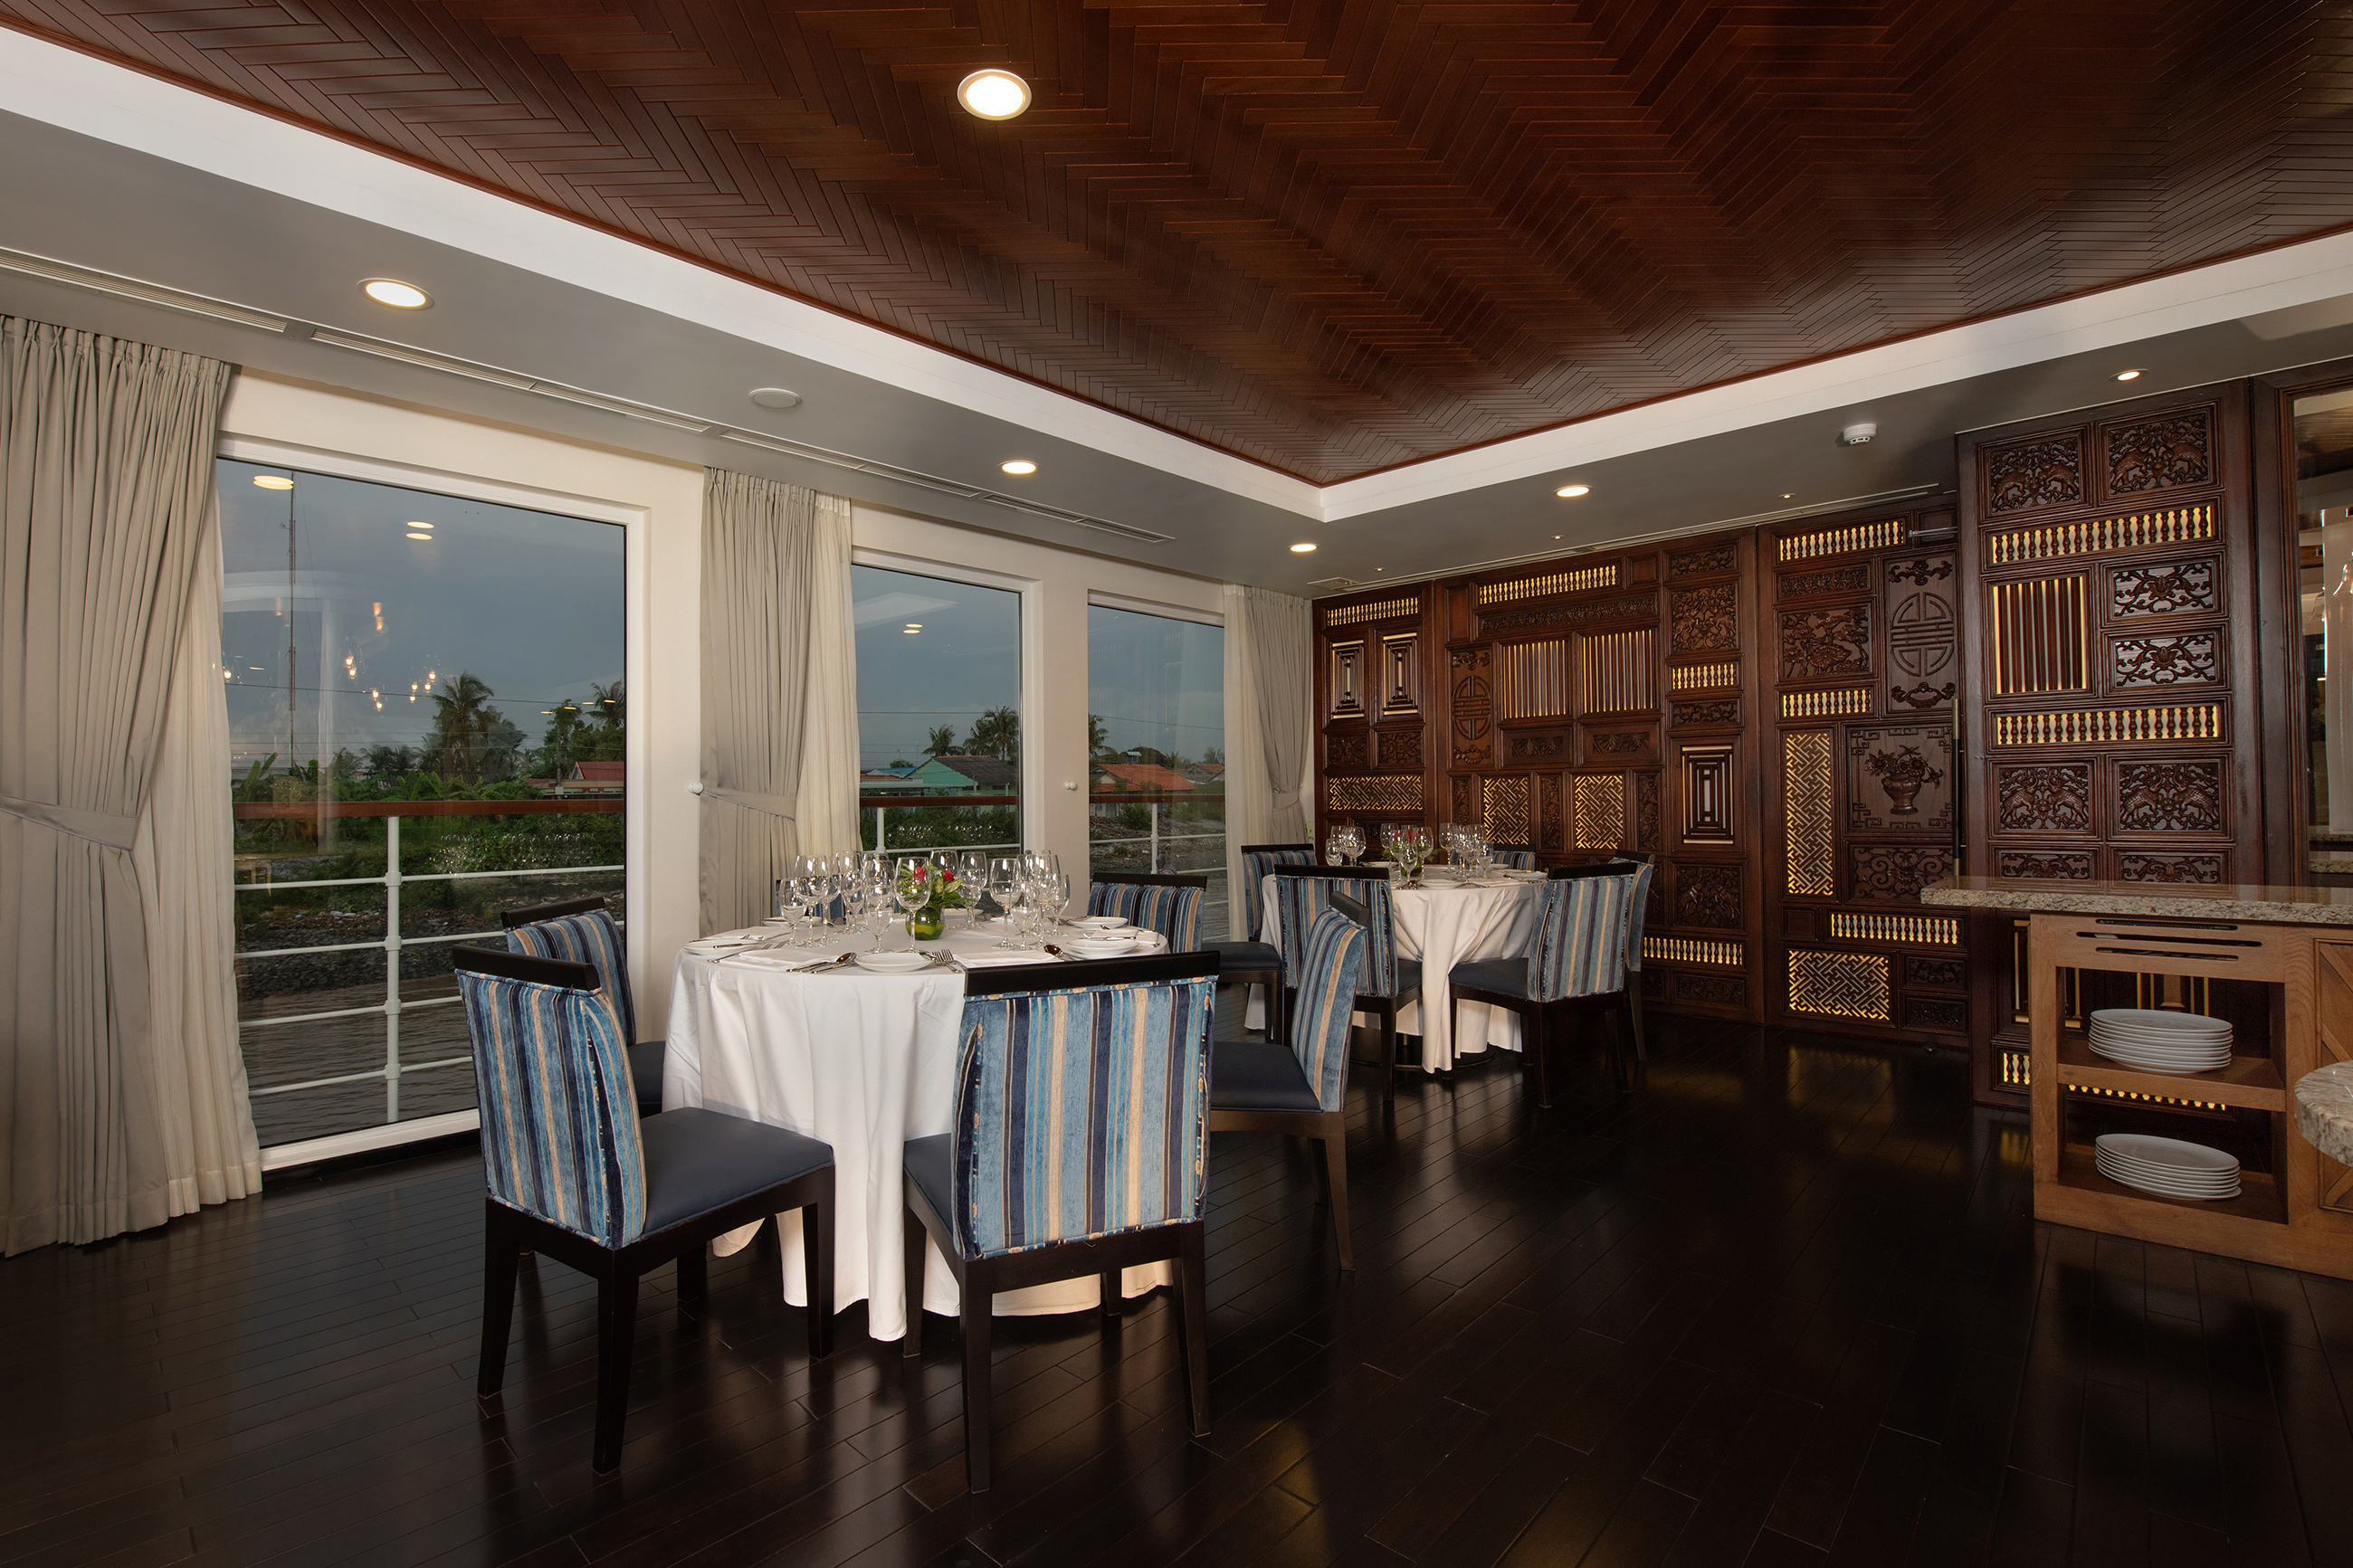 SAIGON_dining_room_2.jpg